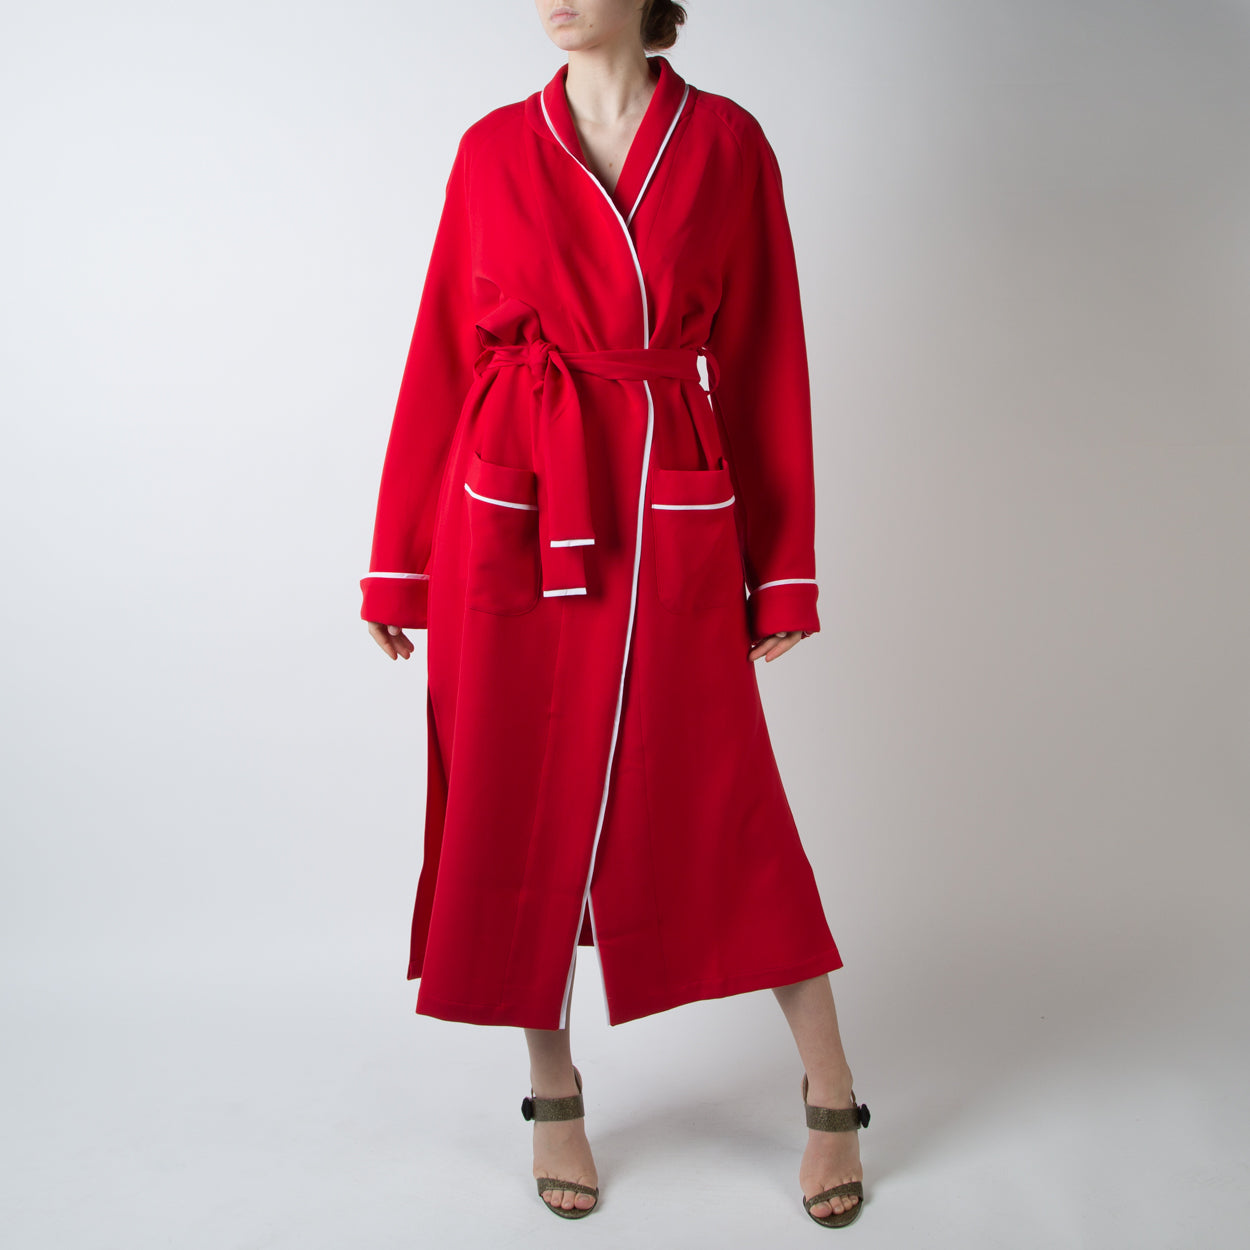 Marx Red Robe